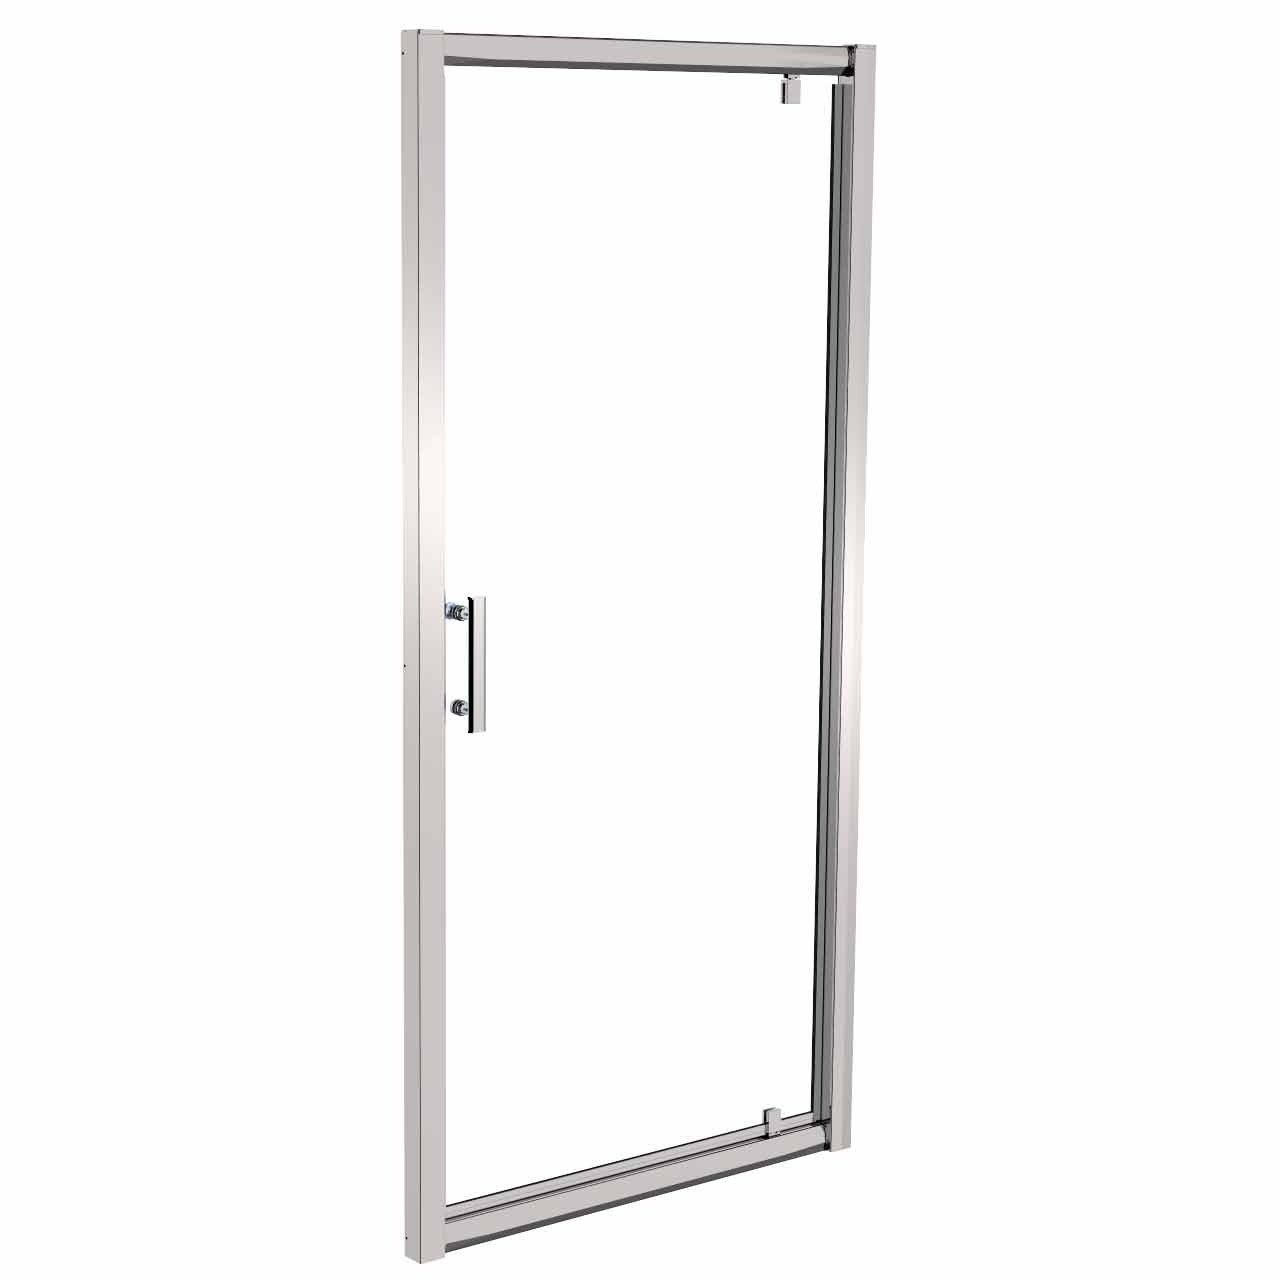 Series 6 900mm x 1000mm Pivot Door Shower Enclosure